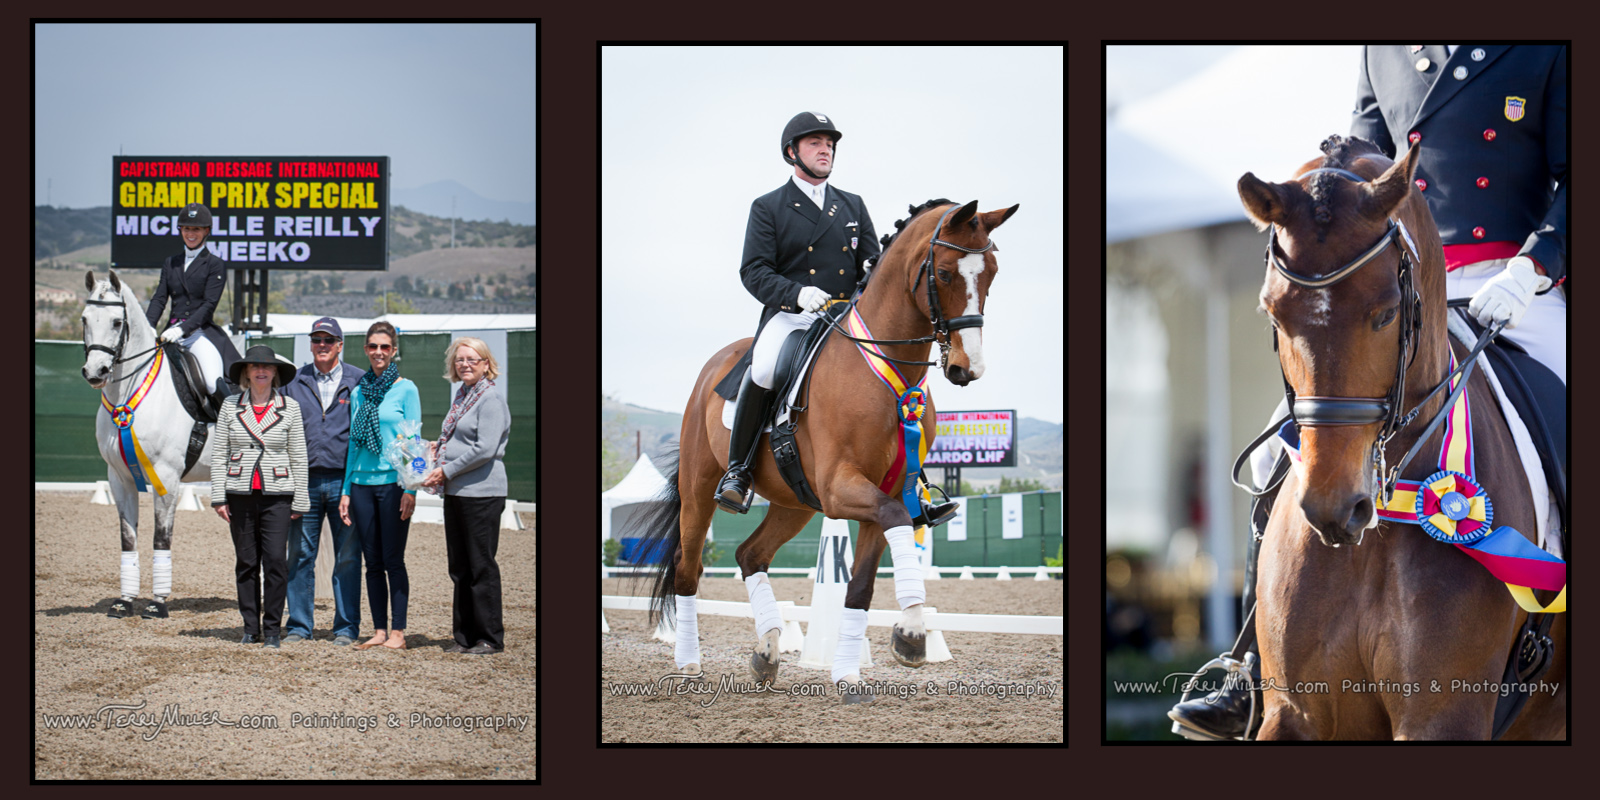 Michelle Reilly on Umeeko with Lorraine MacDonald, David and Alissa Wilson and Glenda McElroy; Brian Haffner on Lombardo; Steffen Peters and Rosamunde